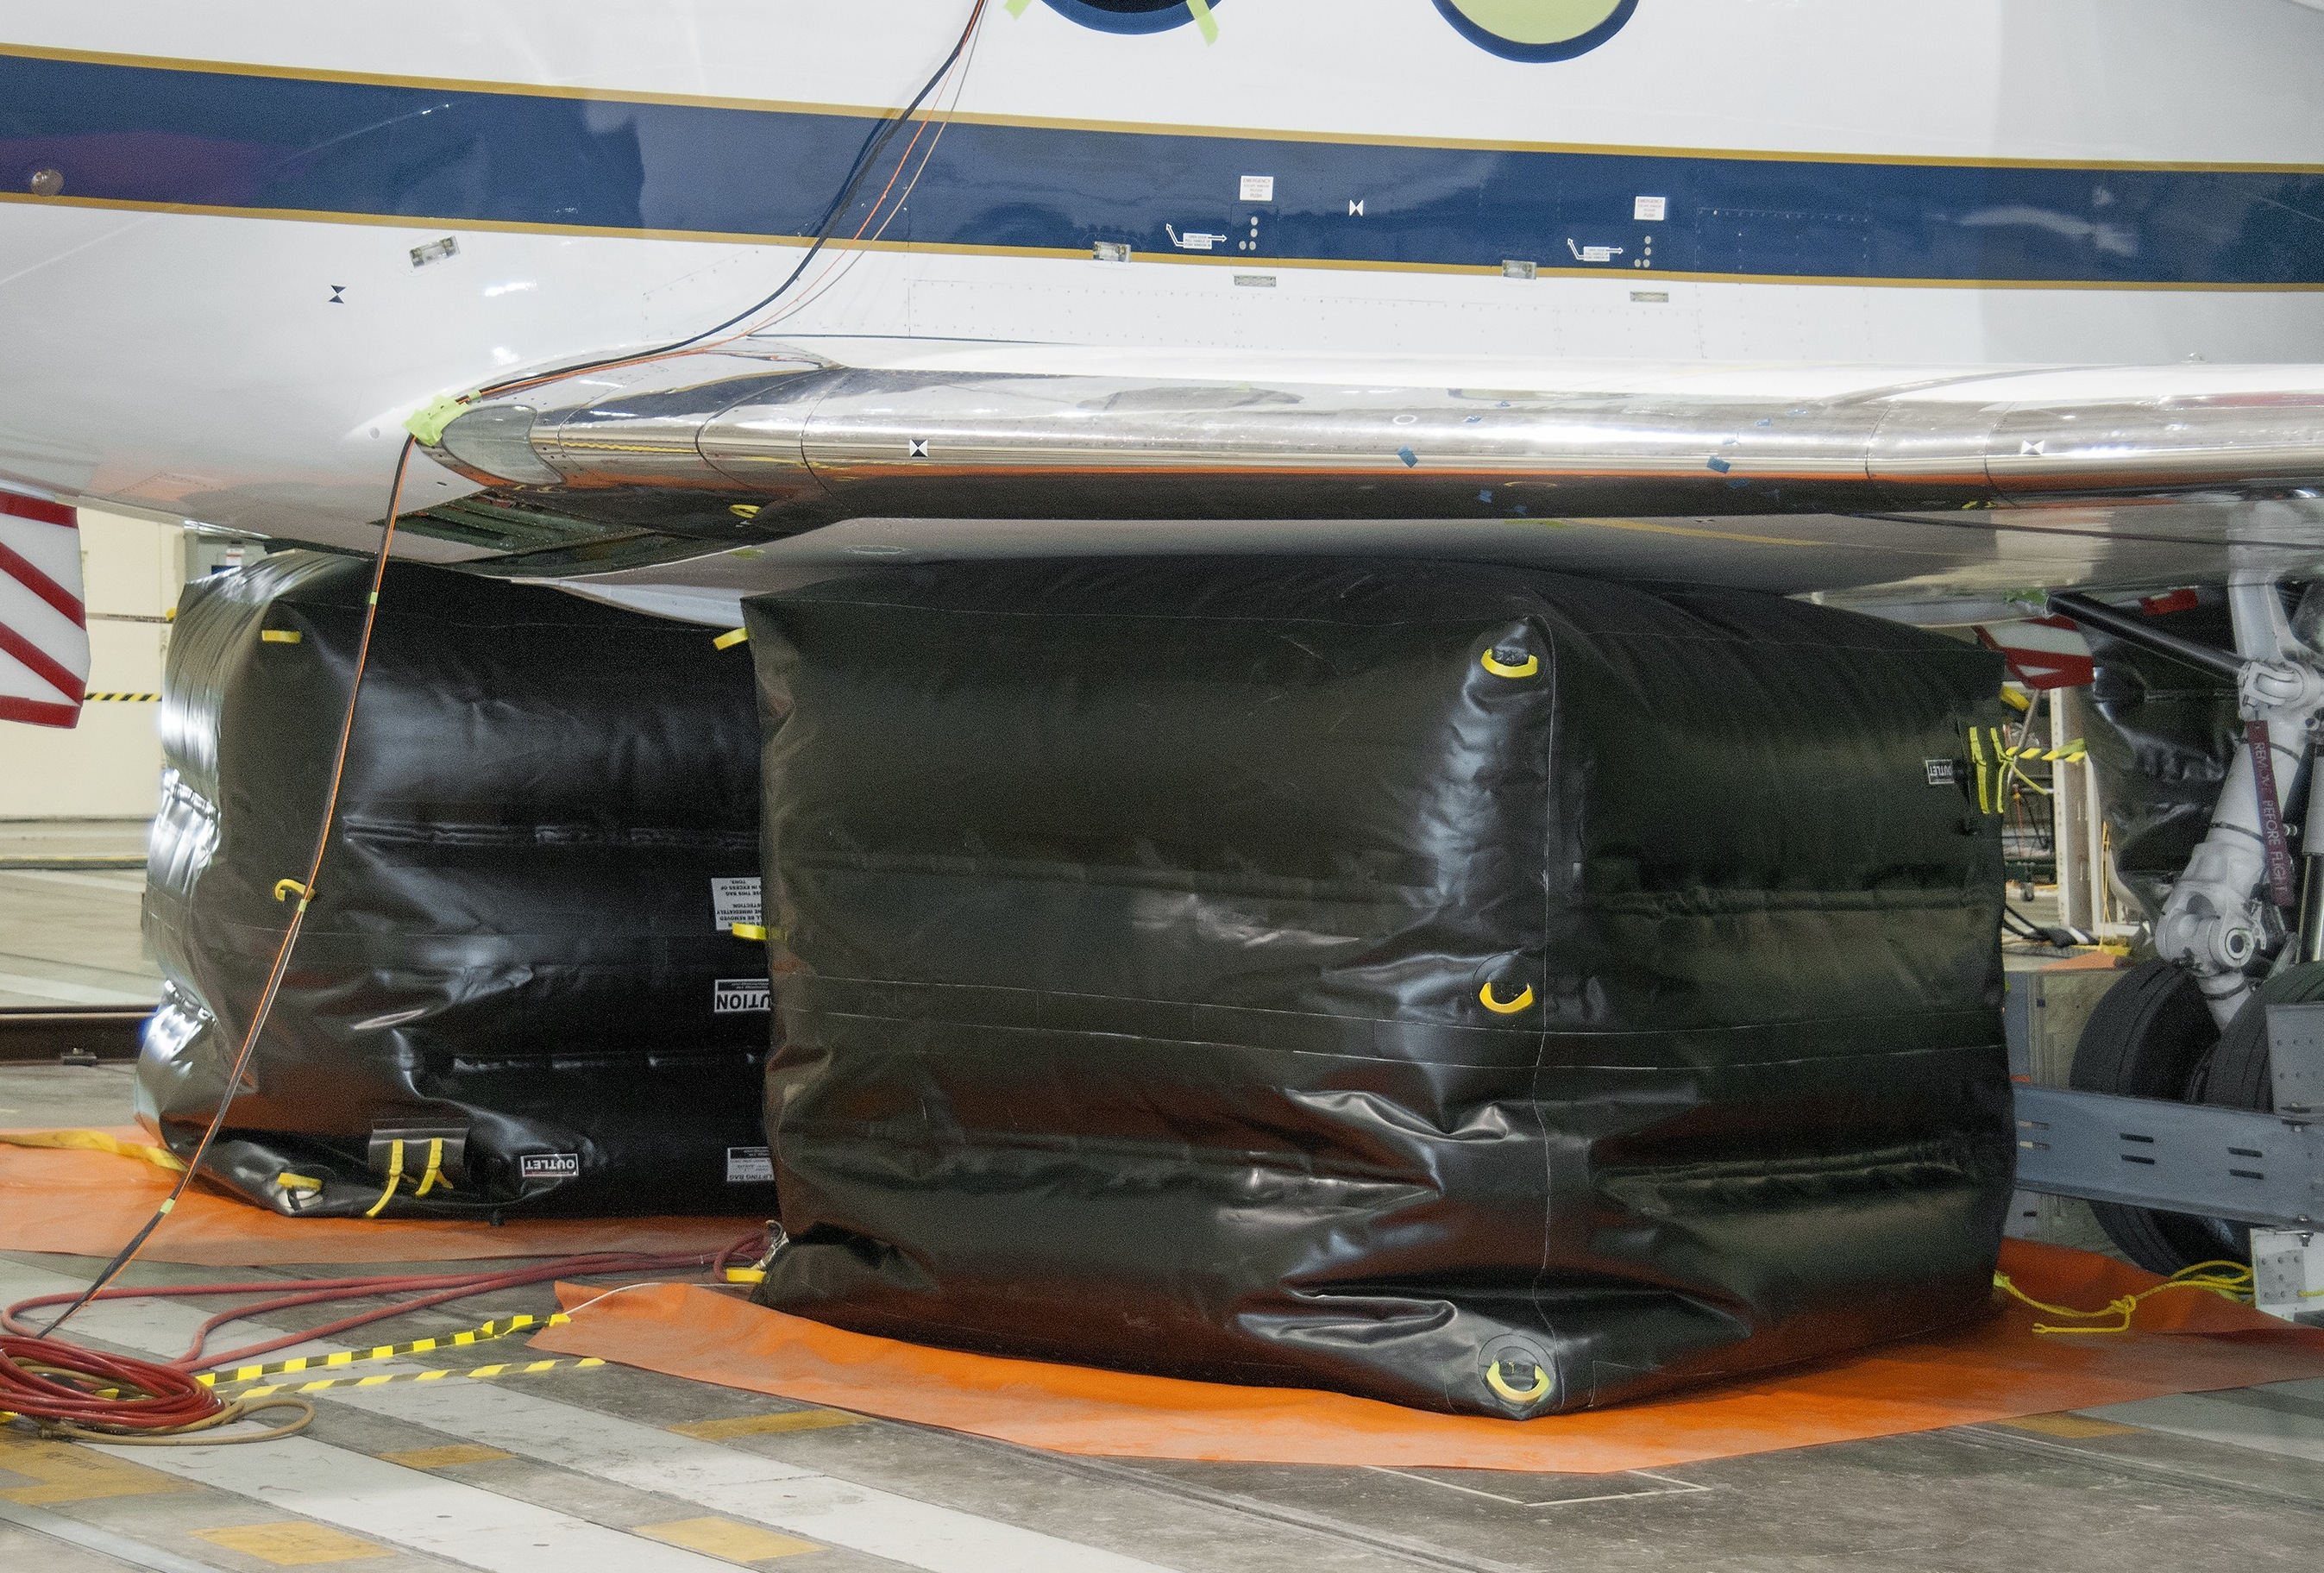 Airbags Take the Weight in G-III ACTE Loads Tests | NASA